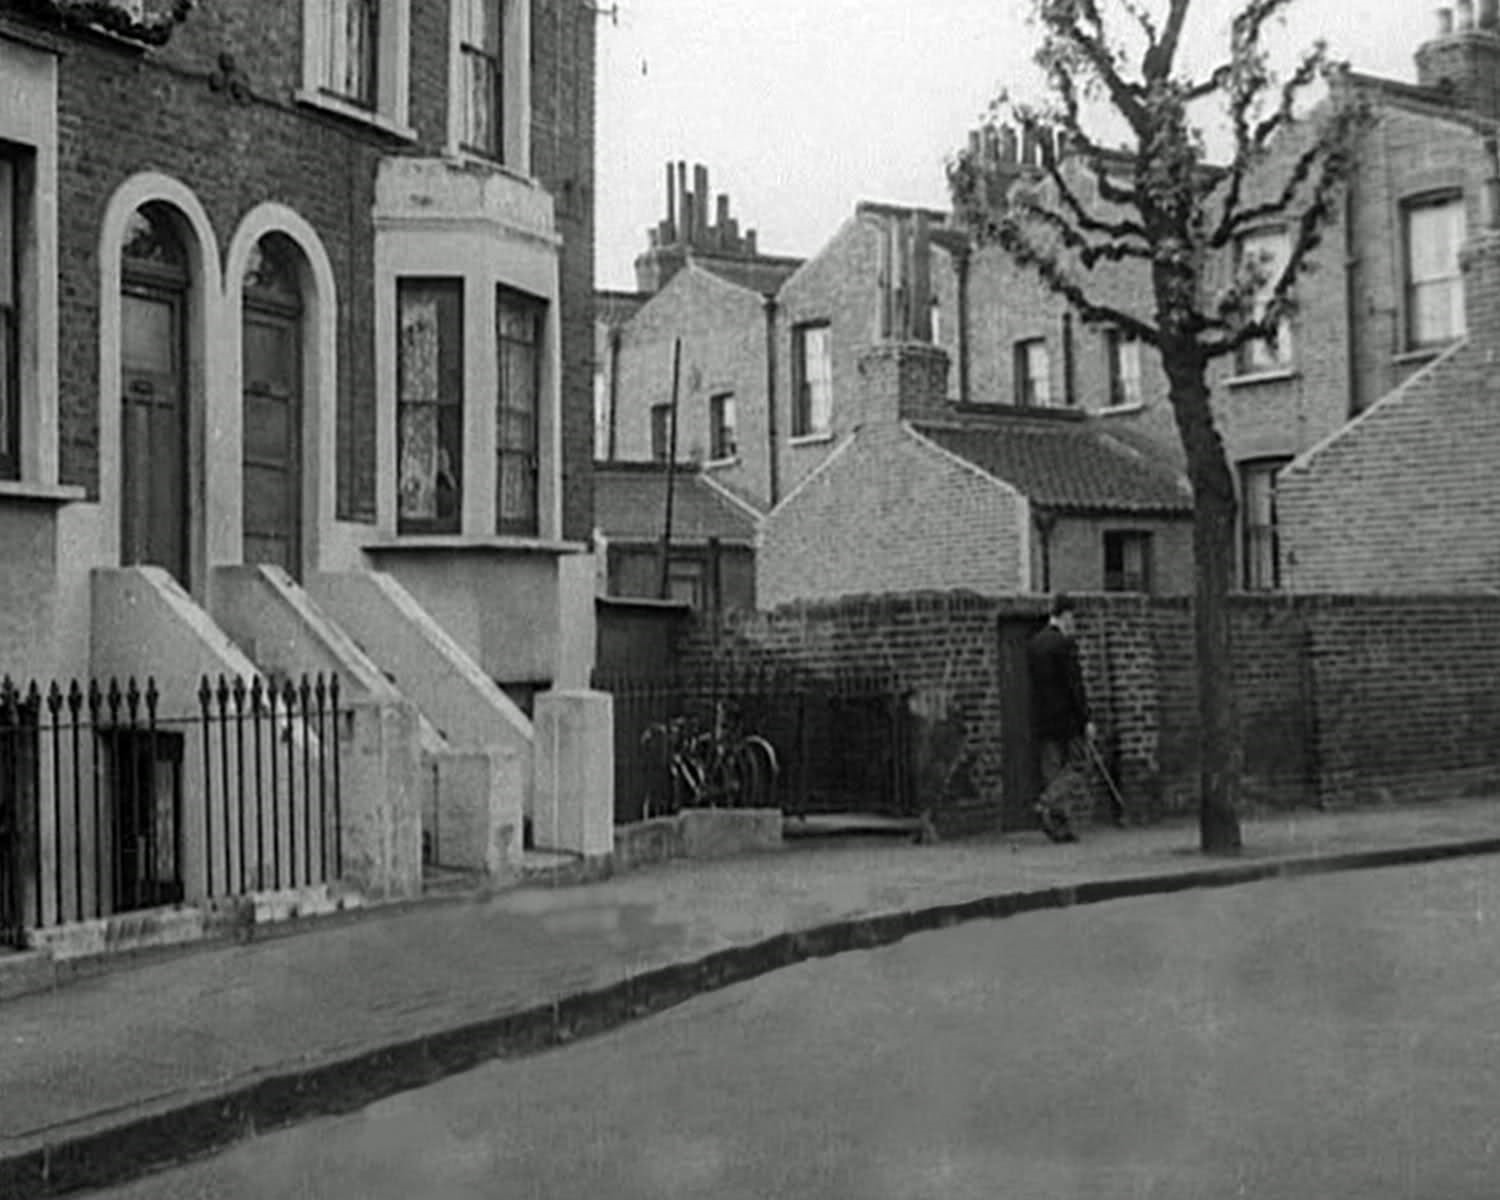 28 & 29 Drappers Road and the backs of houses in Lucey Road,Bermondsey c 1950-60 X.jpg